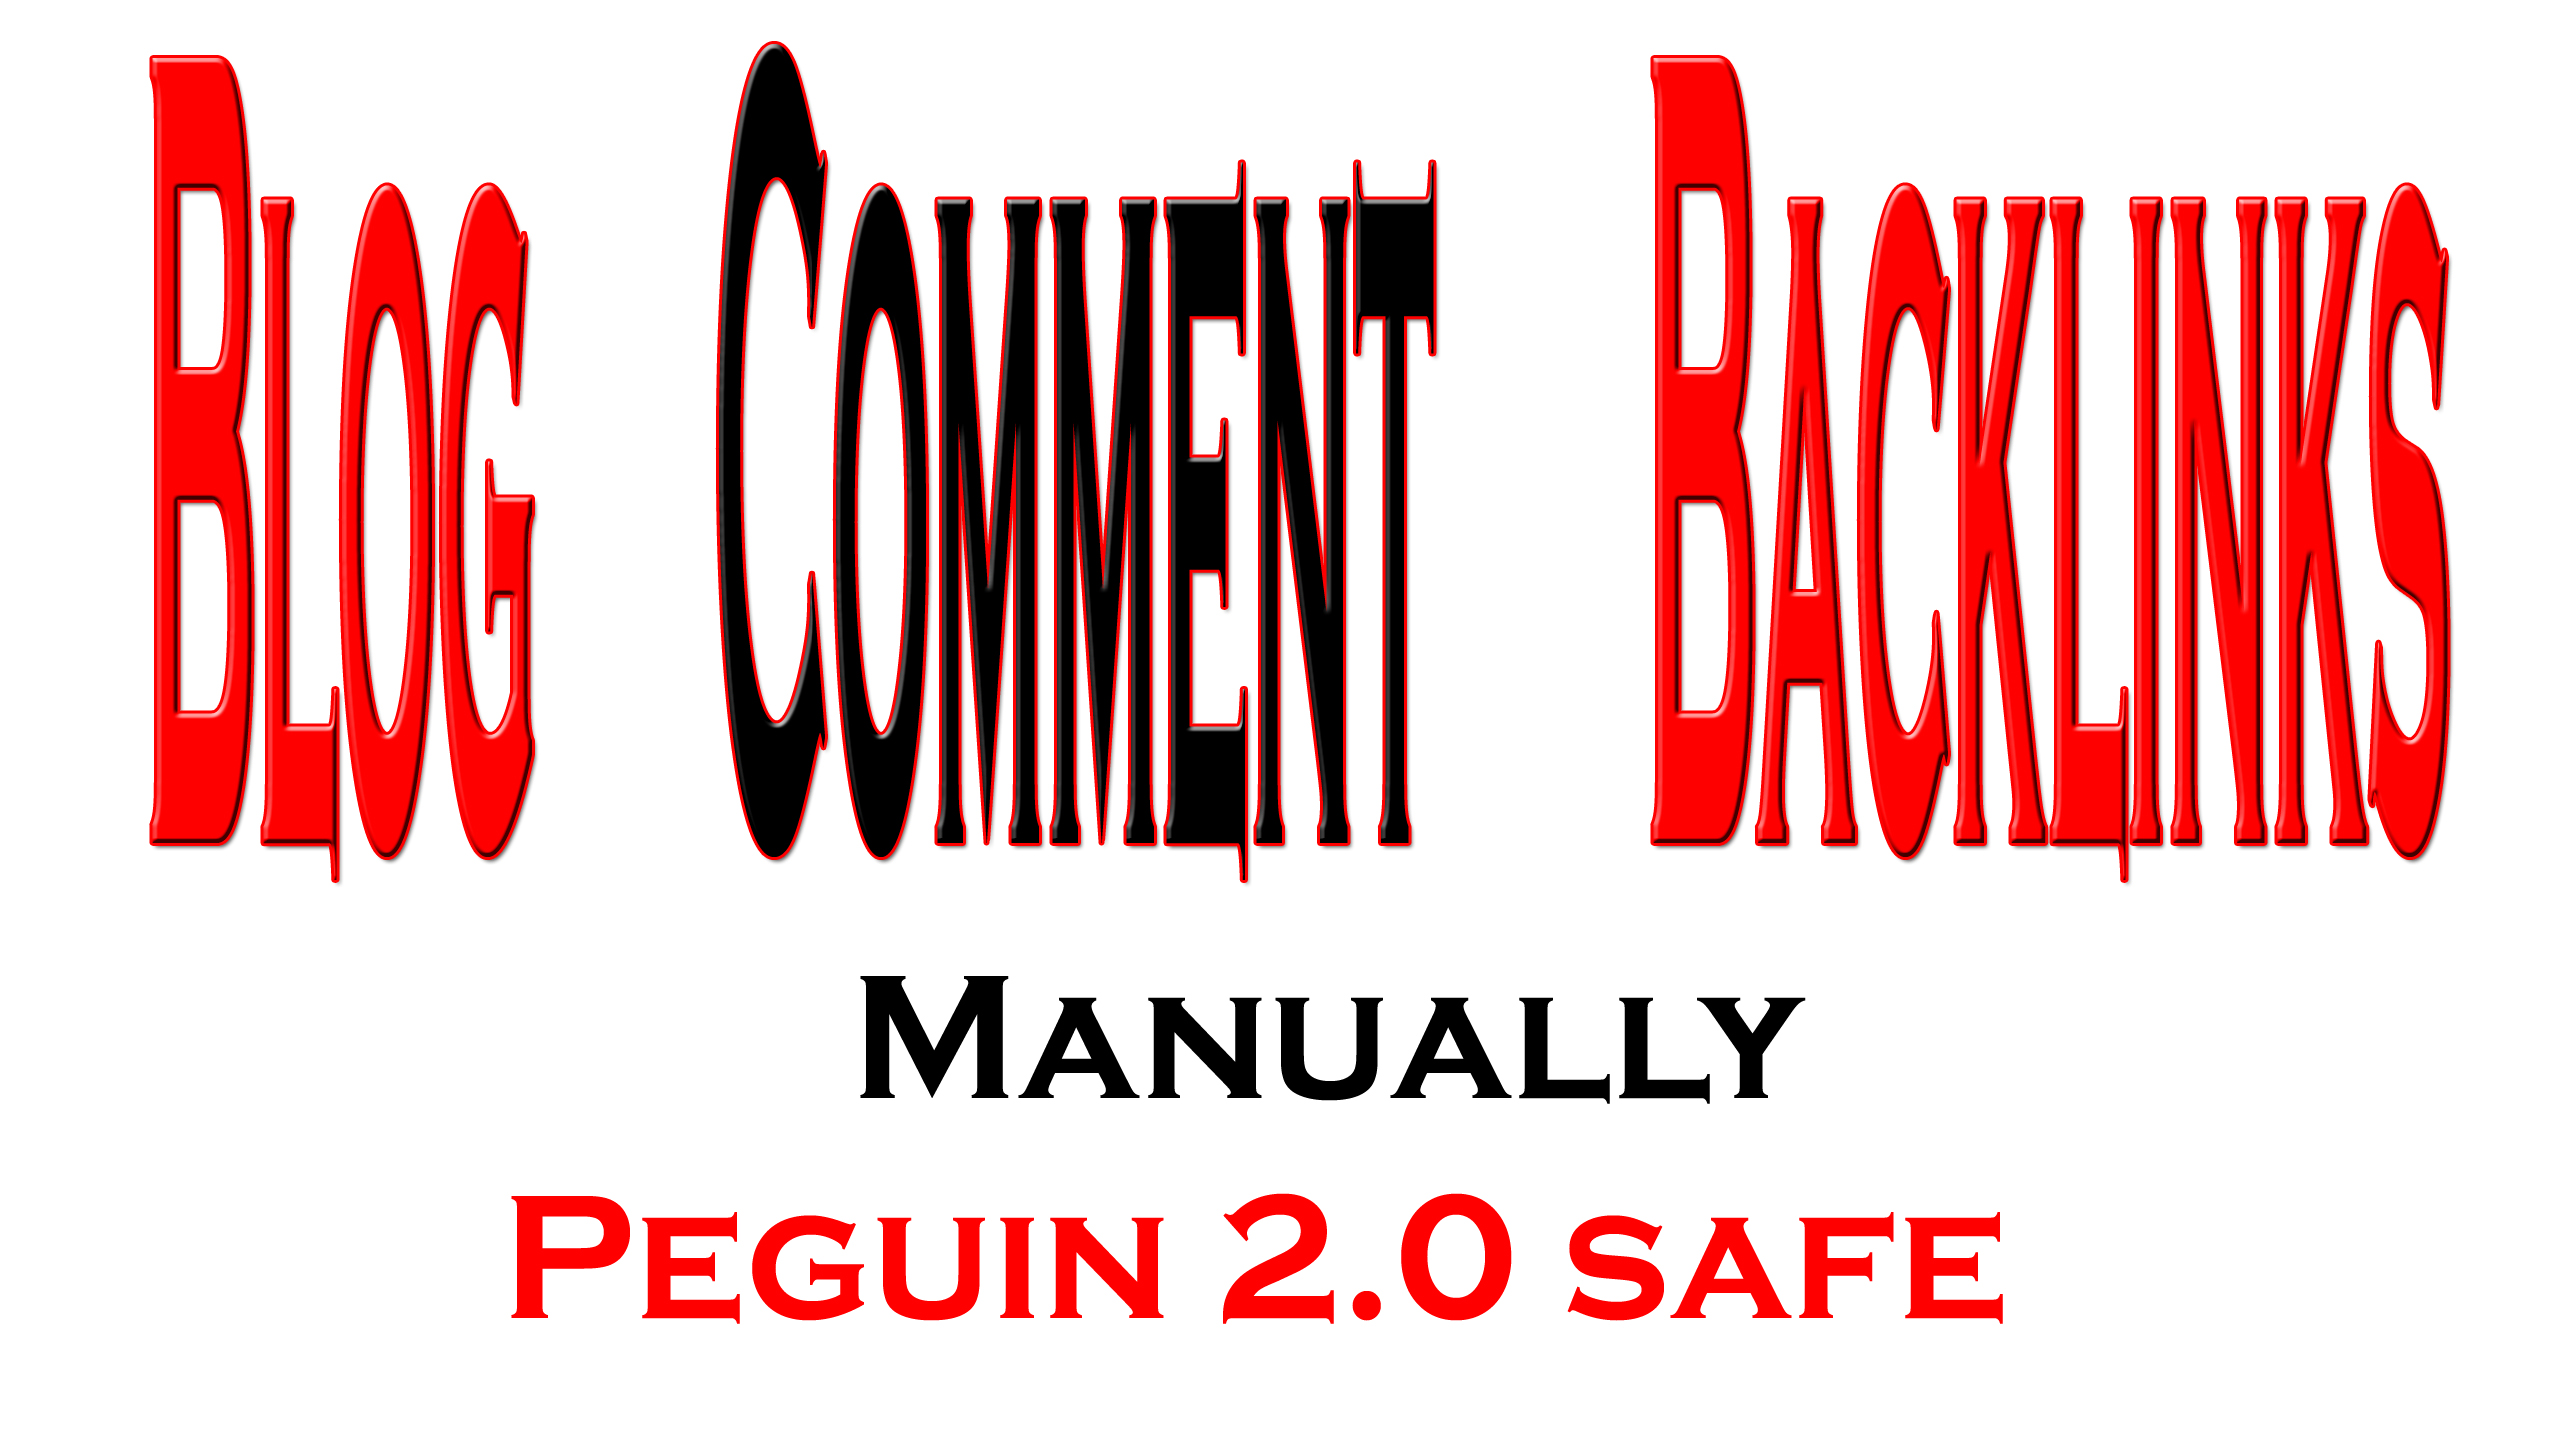 Get Manually Peguin 2.0 safe 5 PR3 + 5 PR4 + 5 PR5 Blog Commenting 100 Dofollow Backlinks